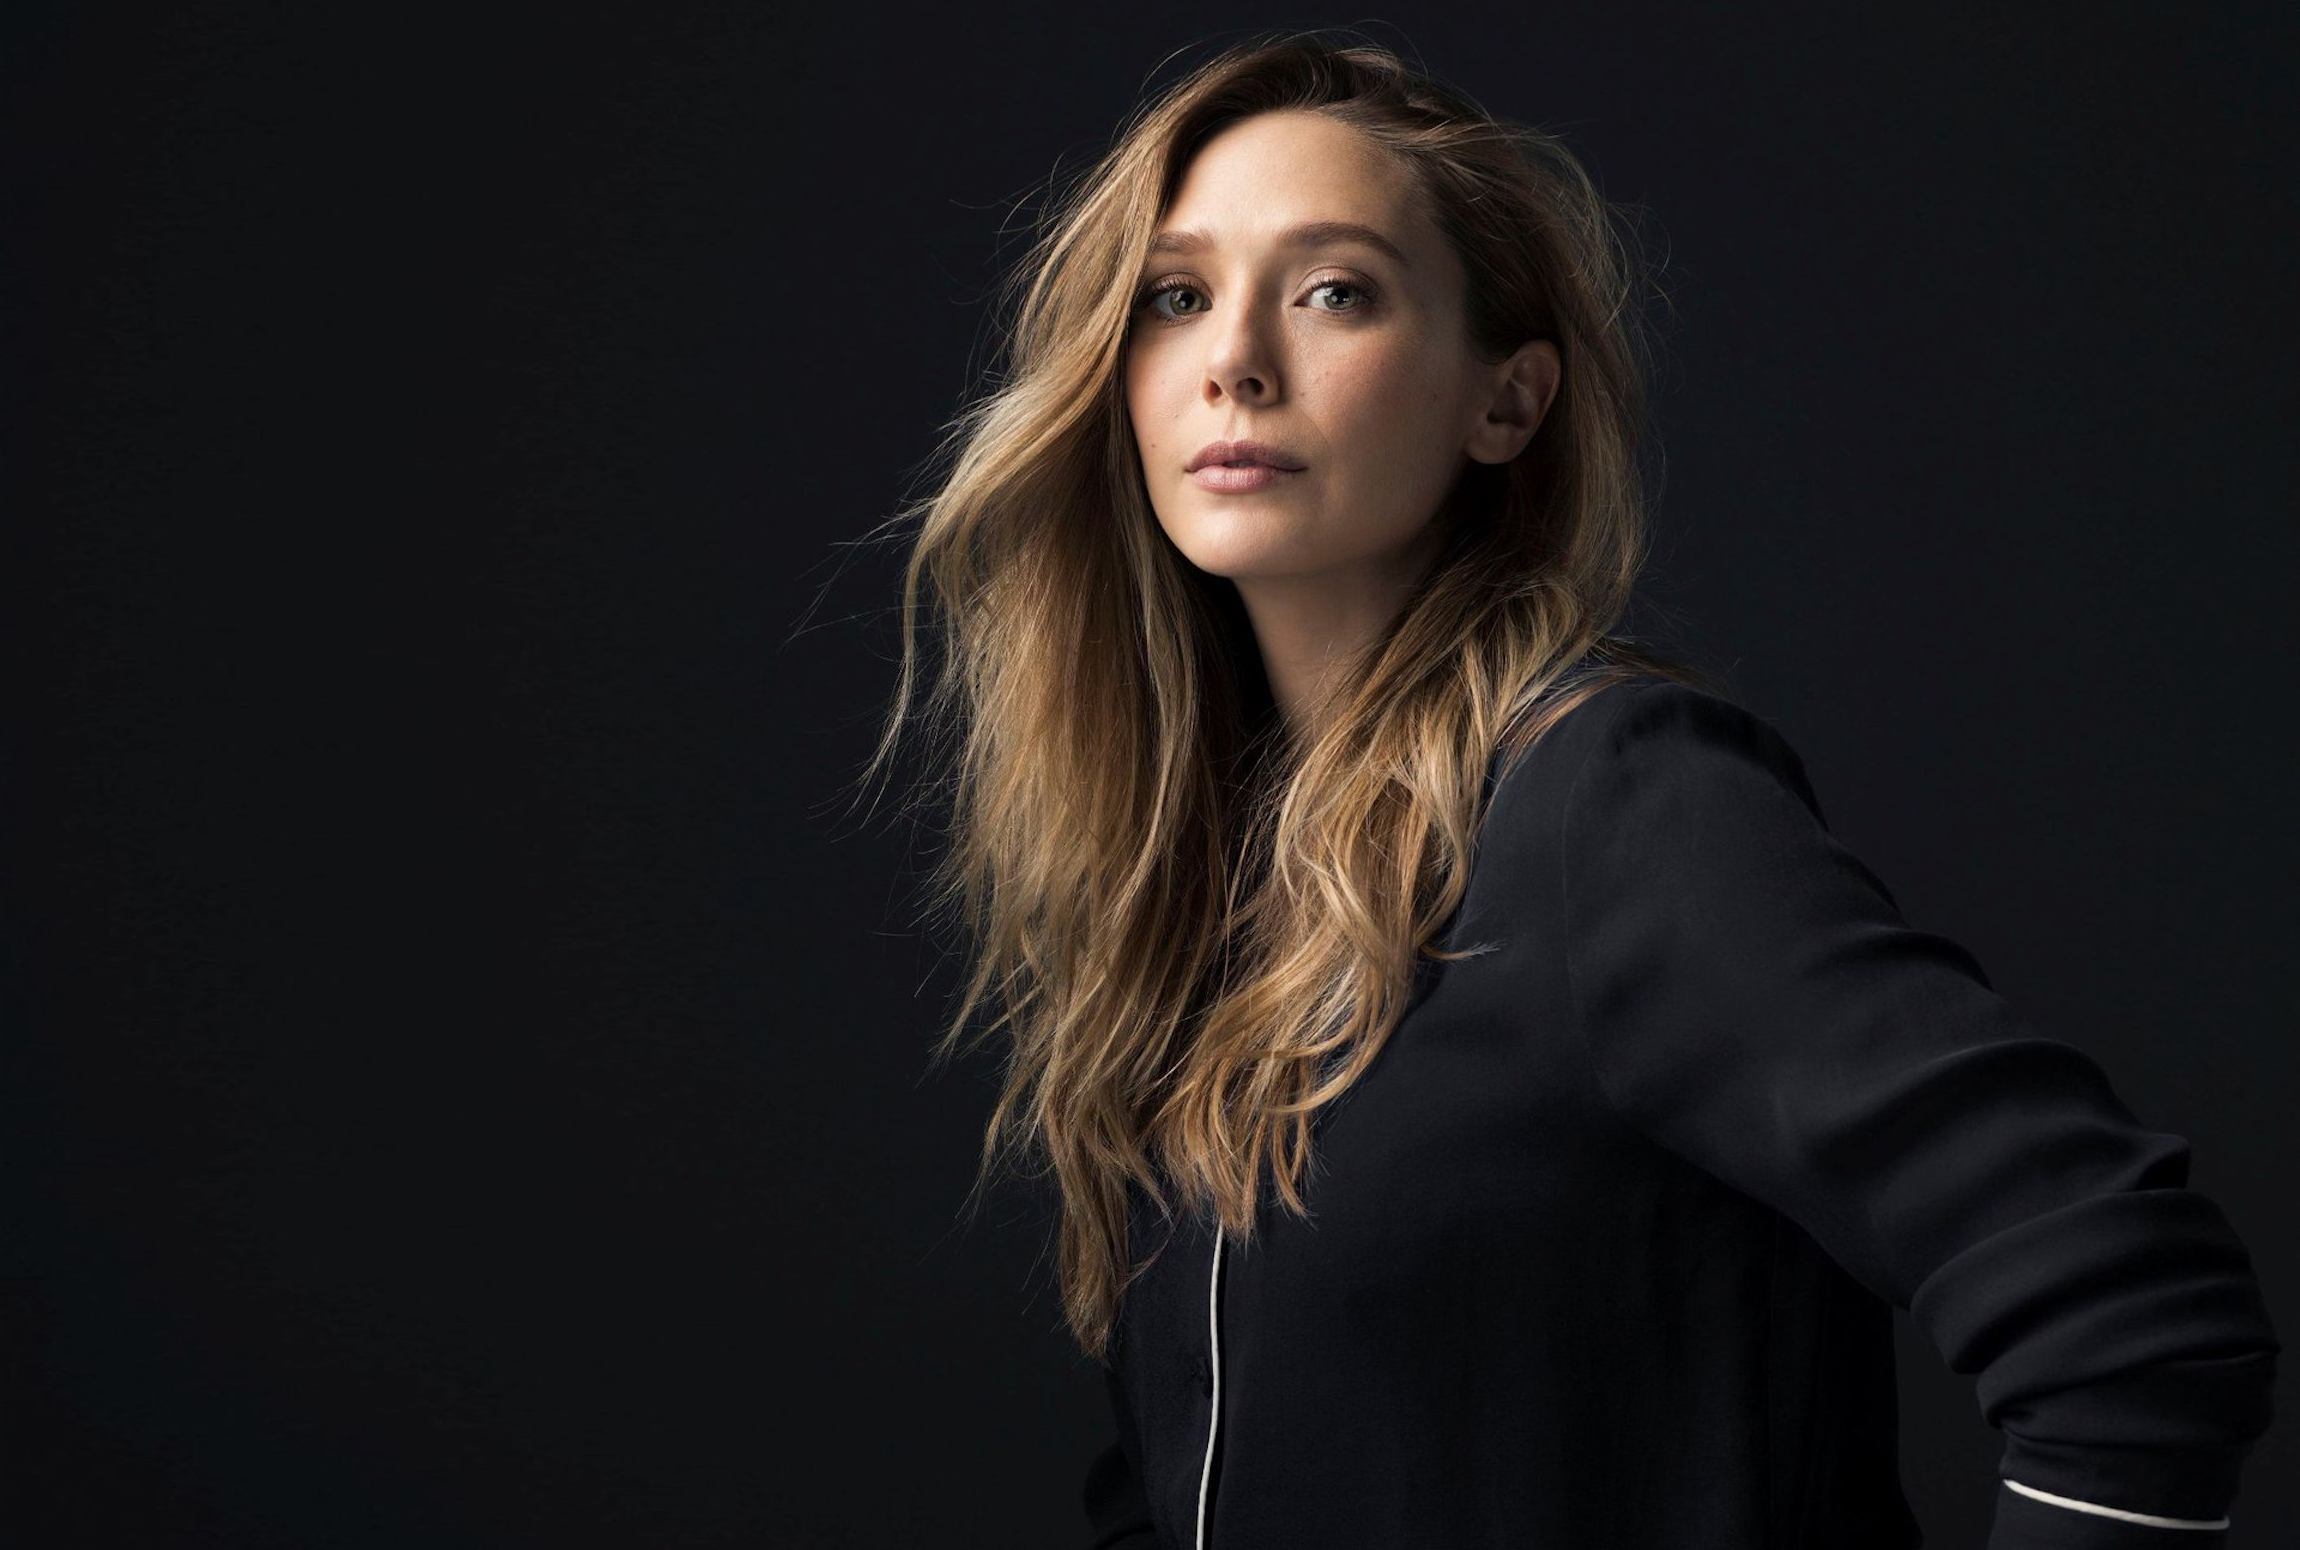 Celebrity Elizabeth Olsen nude photos 2019